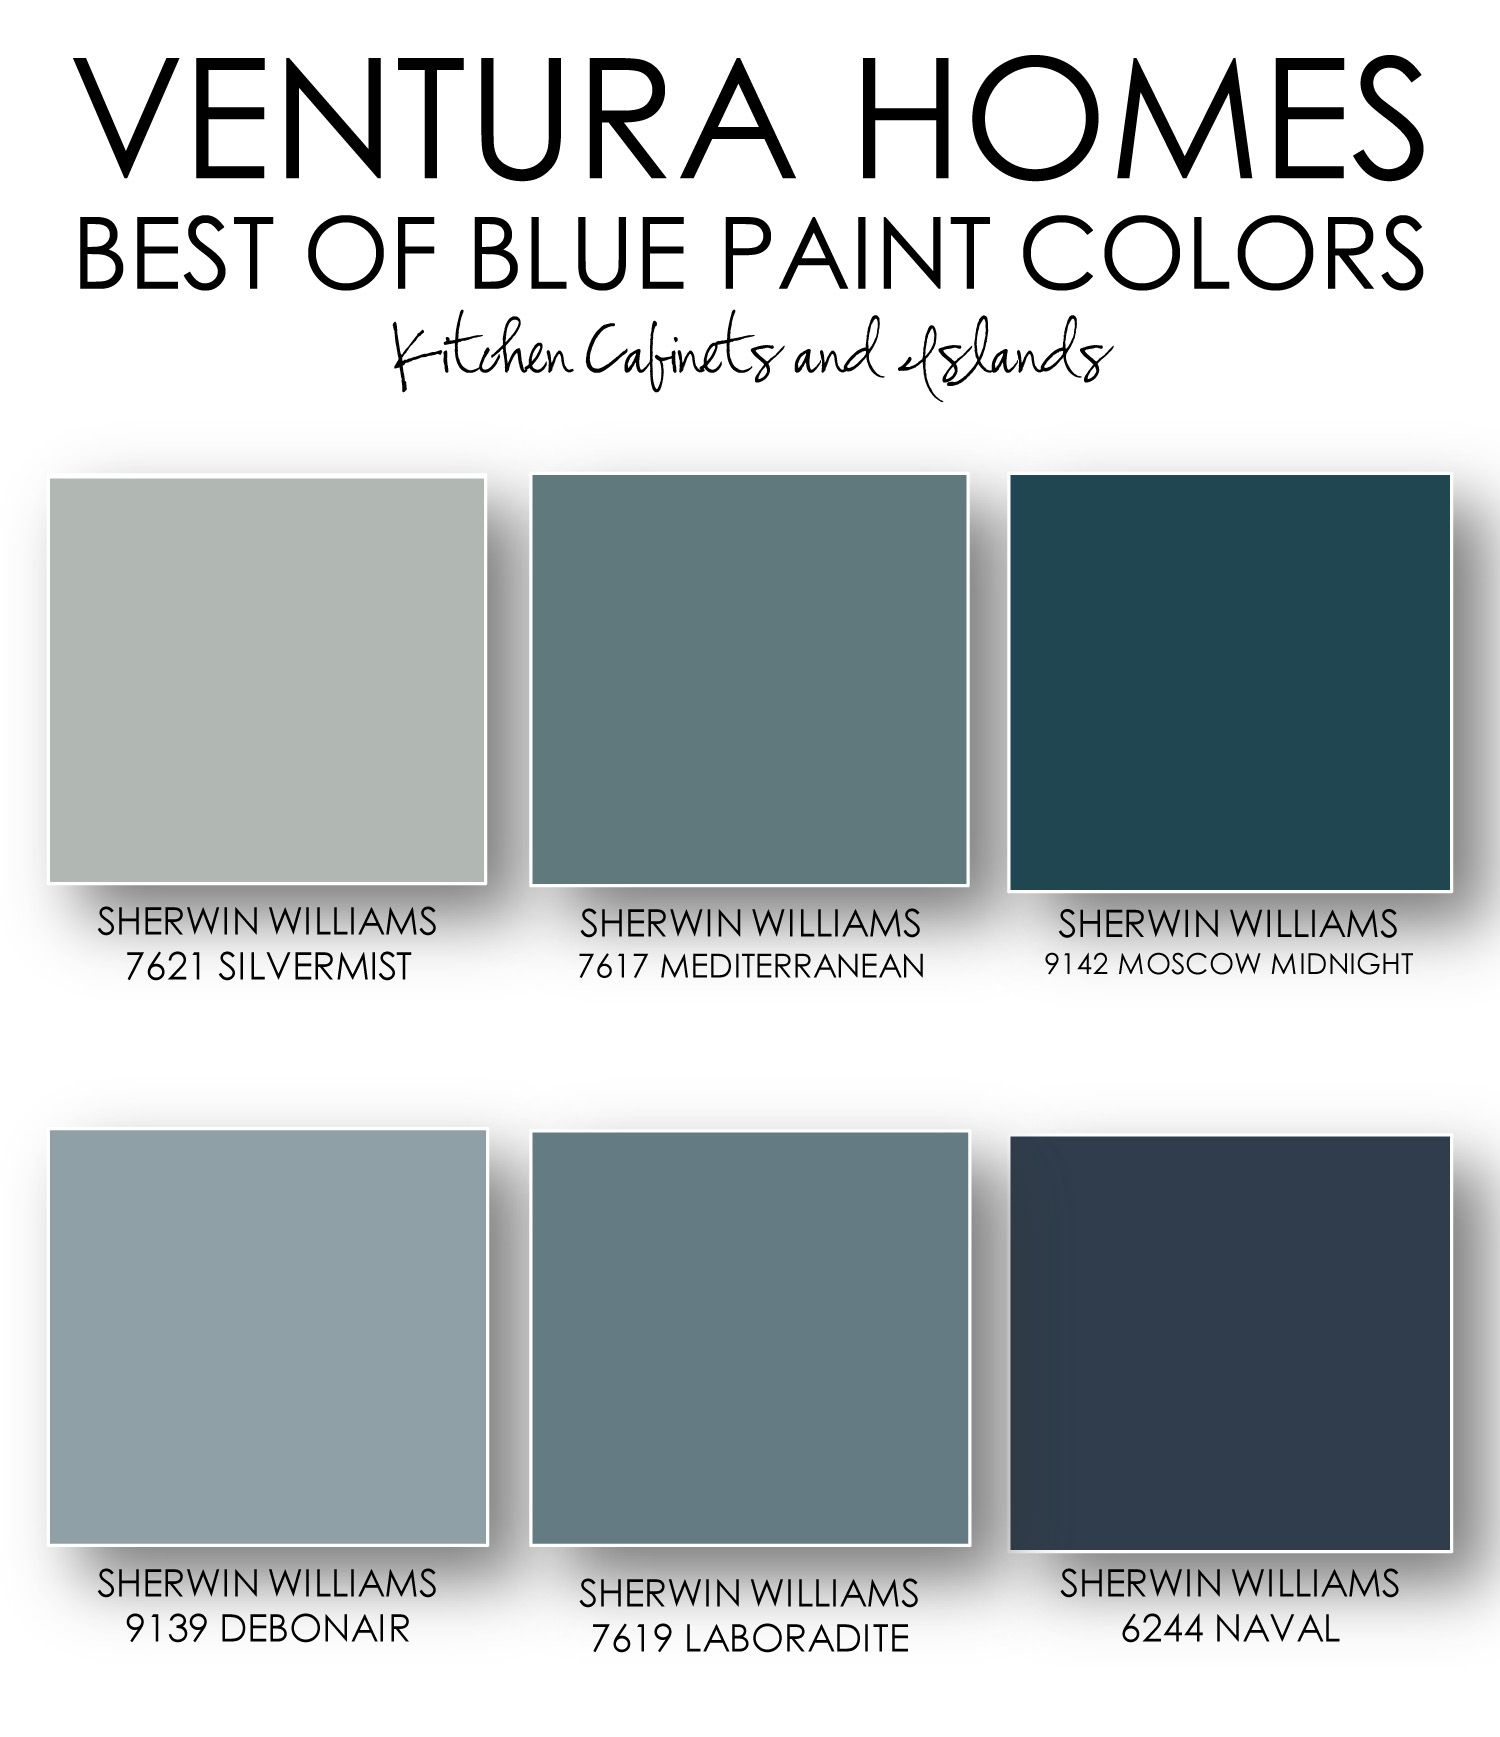 On the blog Ventura Homes Best of Blue Paint Colors